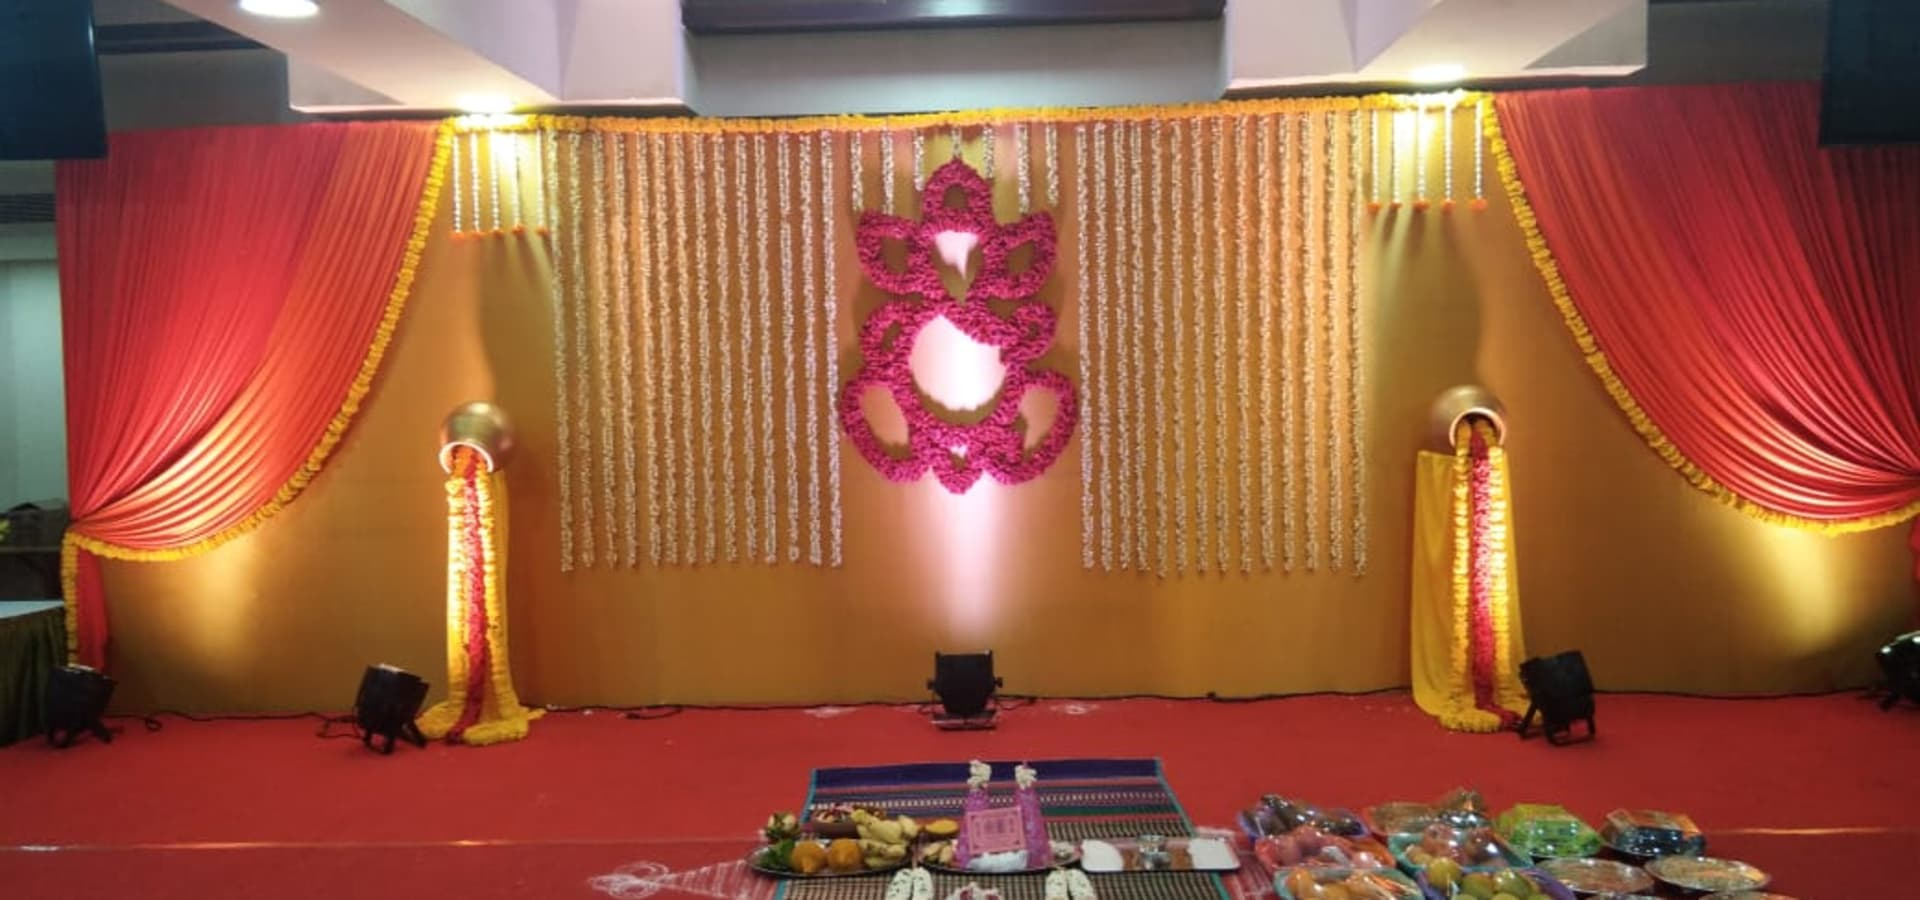 Wedding Aaha— Best wedding planners in chennai